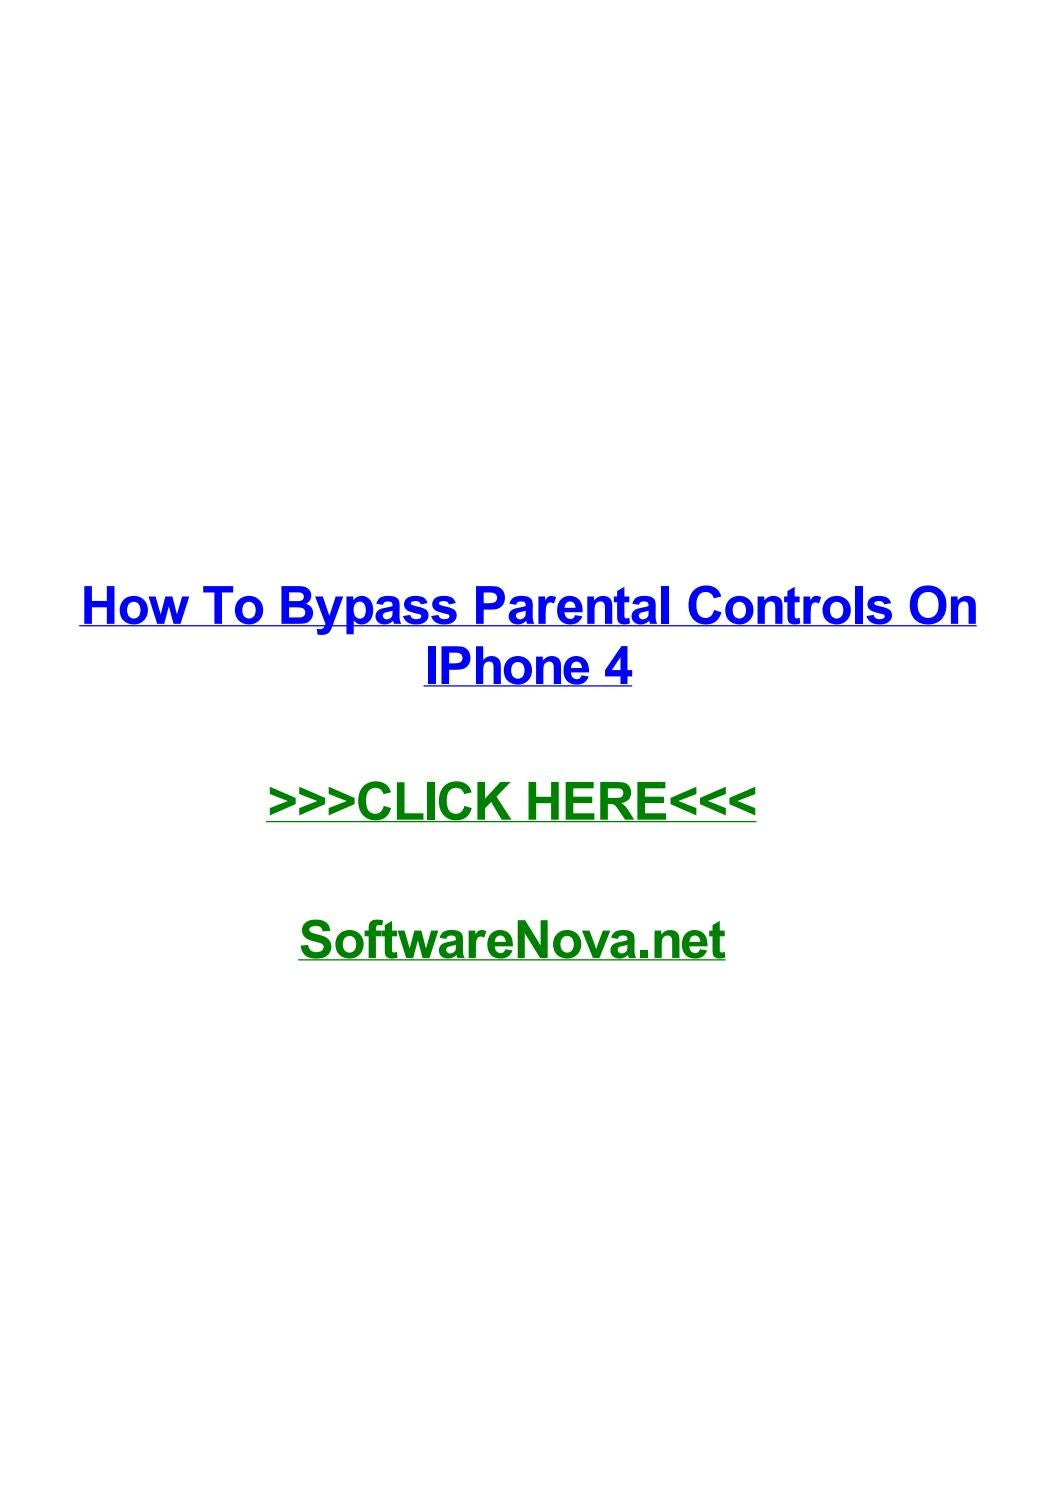 How To Bypass Parental Controls On Iphone 4 By Michaelsyne Issuu